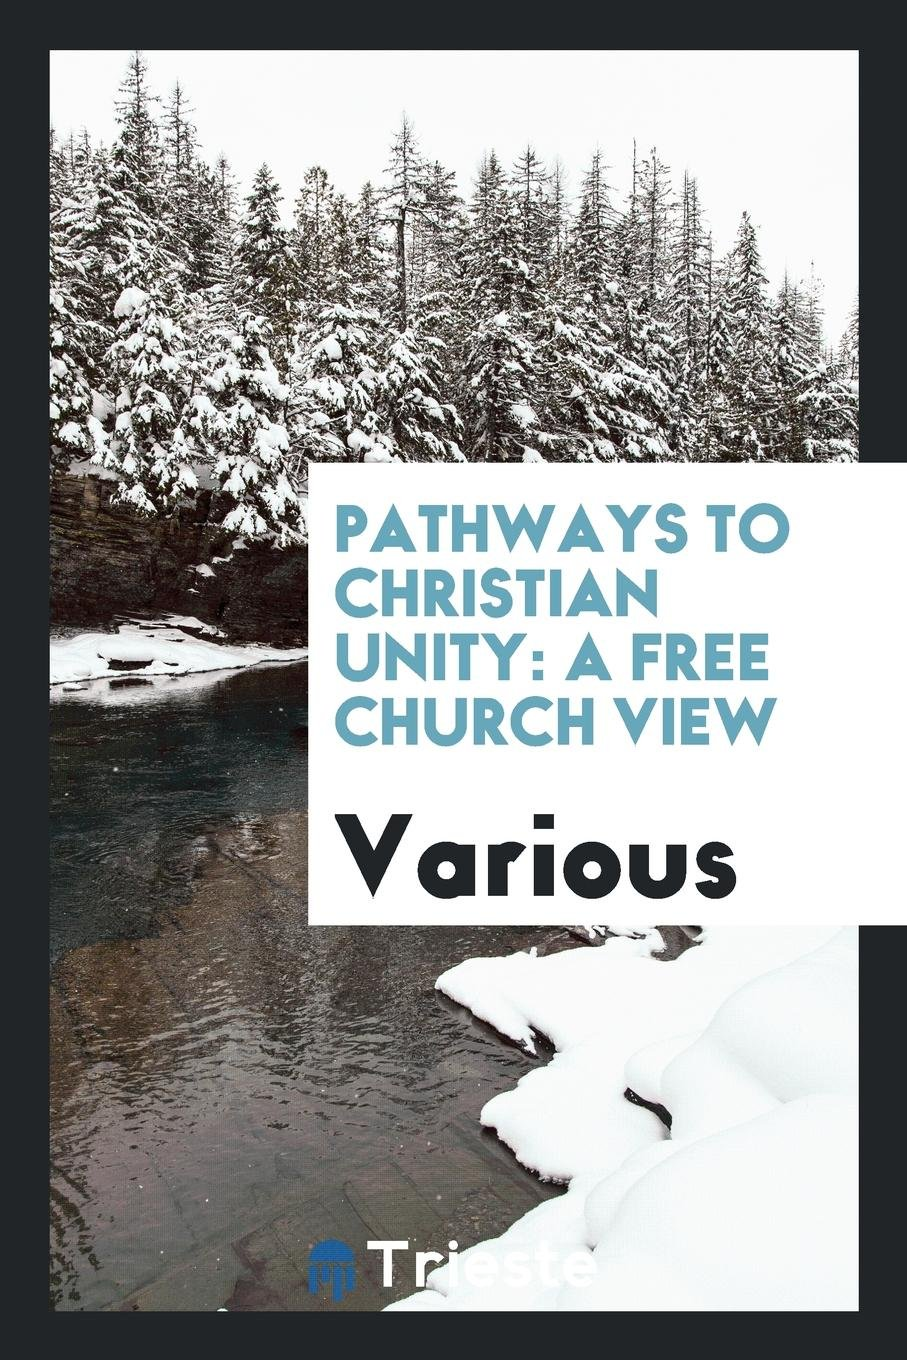 Pathways to Christian unity: a Free Church view: Various